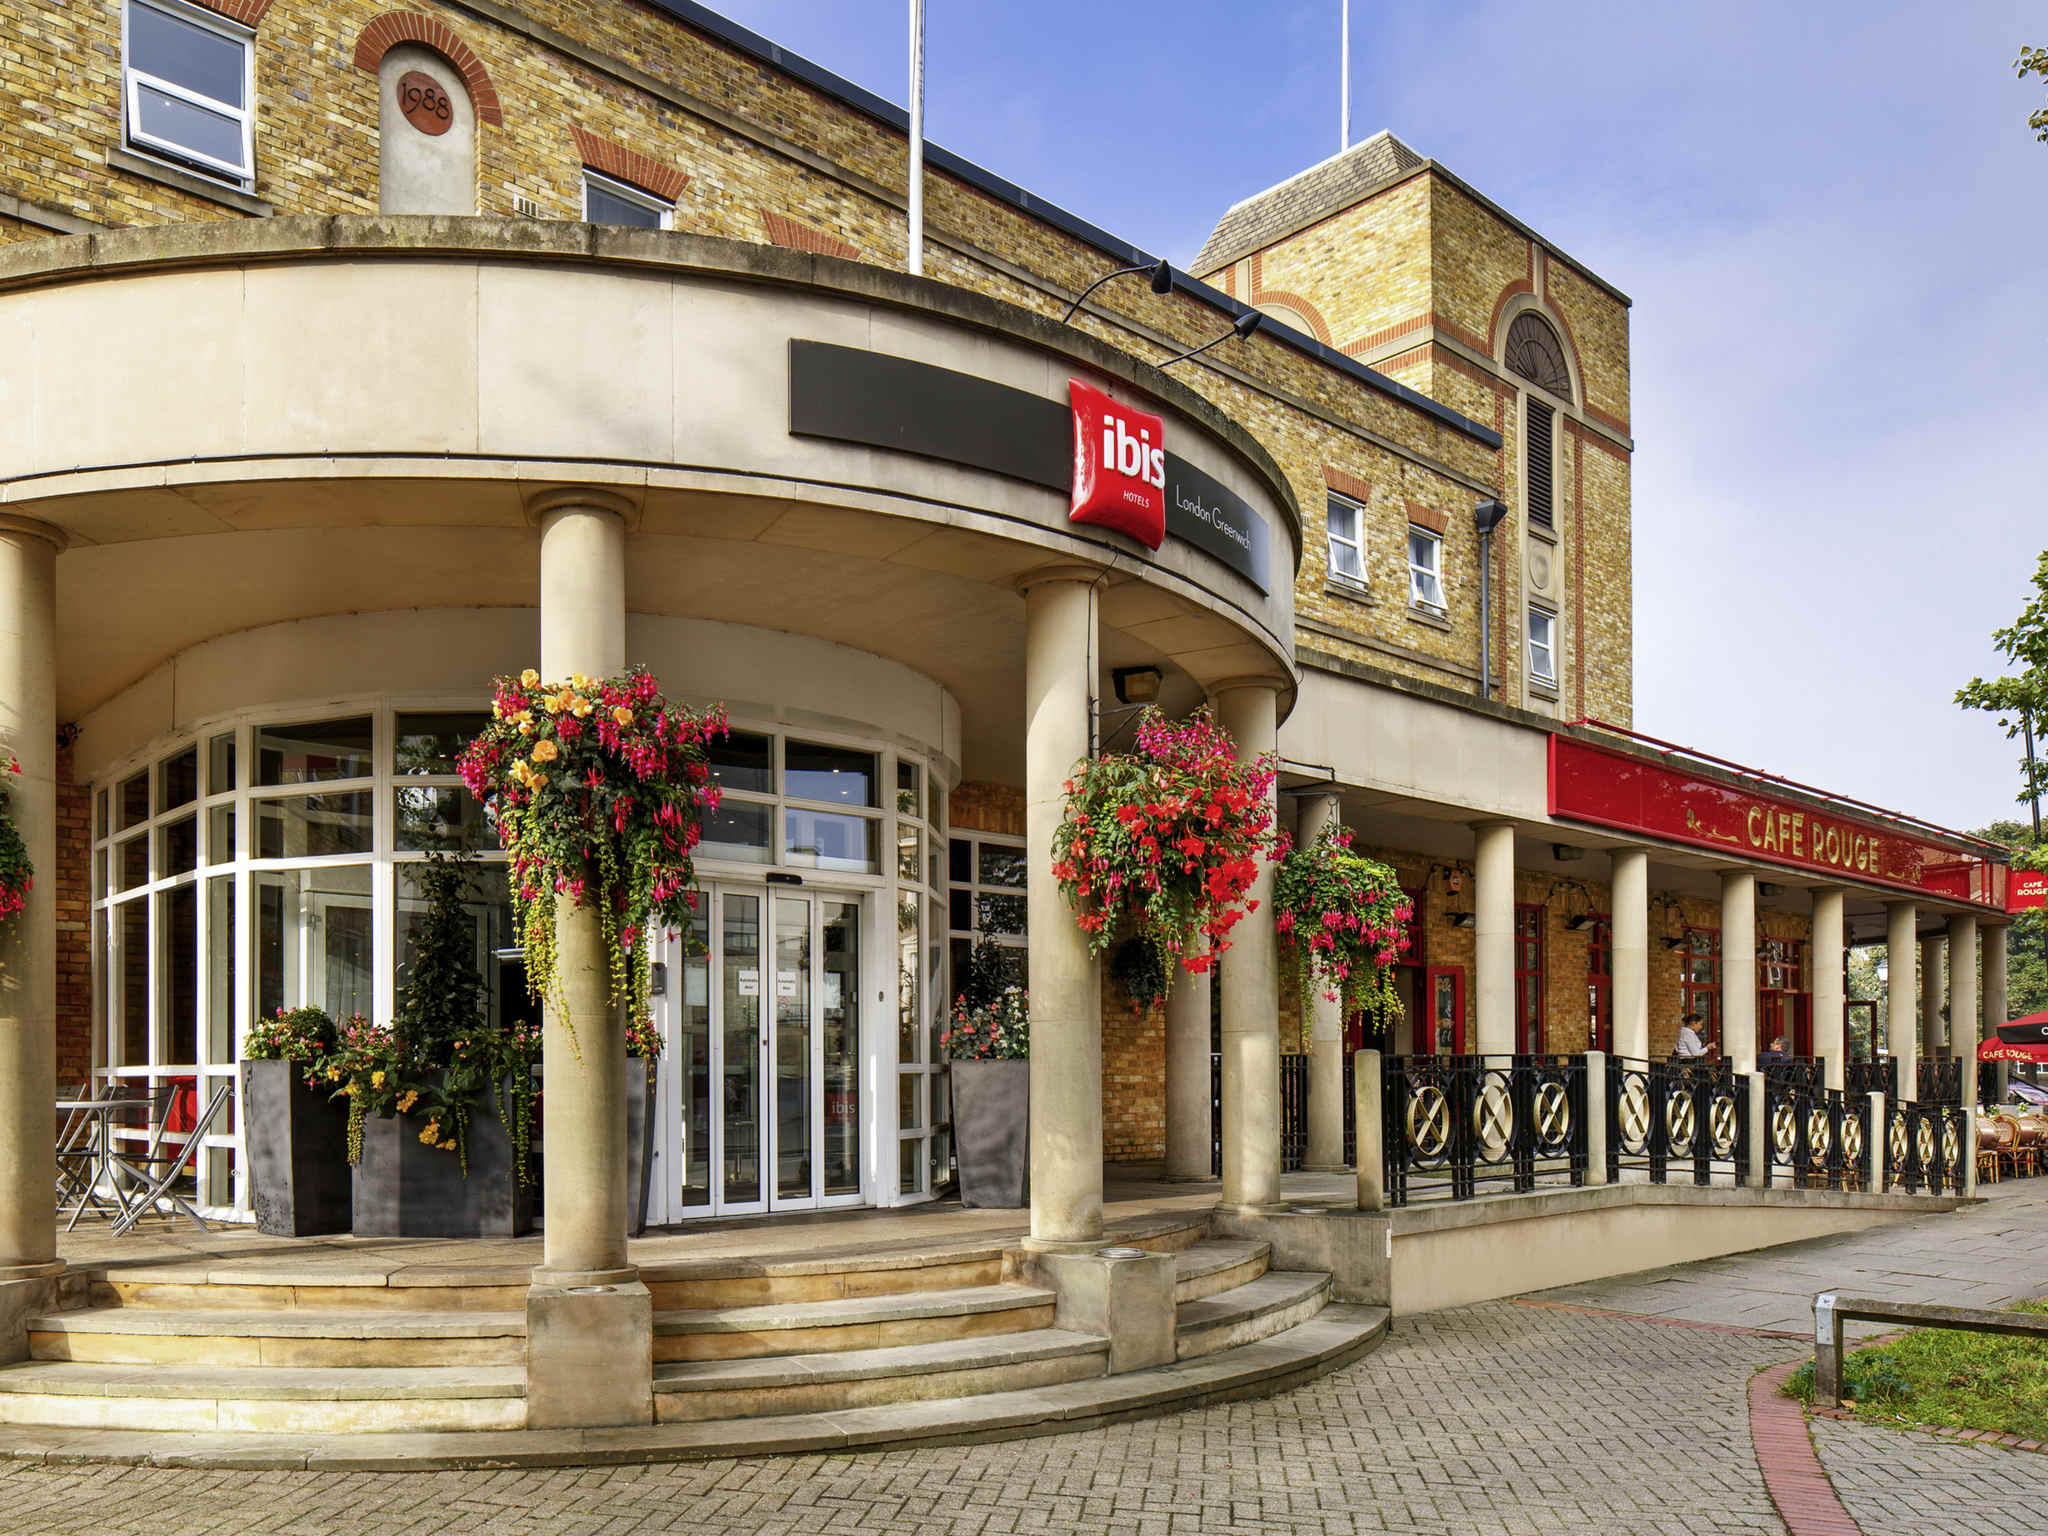 Ibis london greenwich well equipped hotel inlondon for Hotel adagio londres